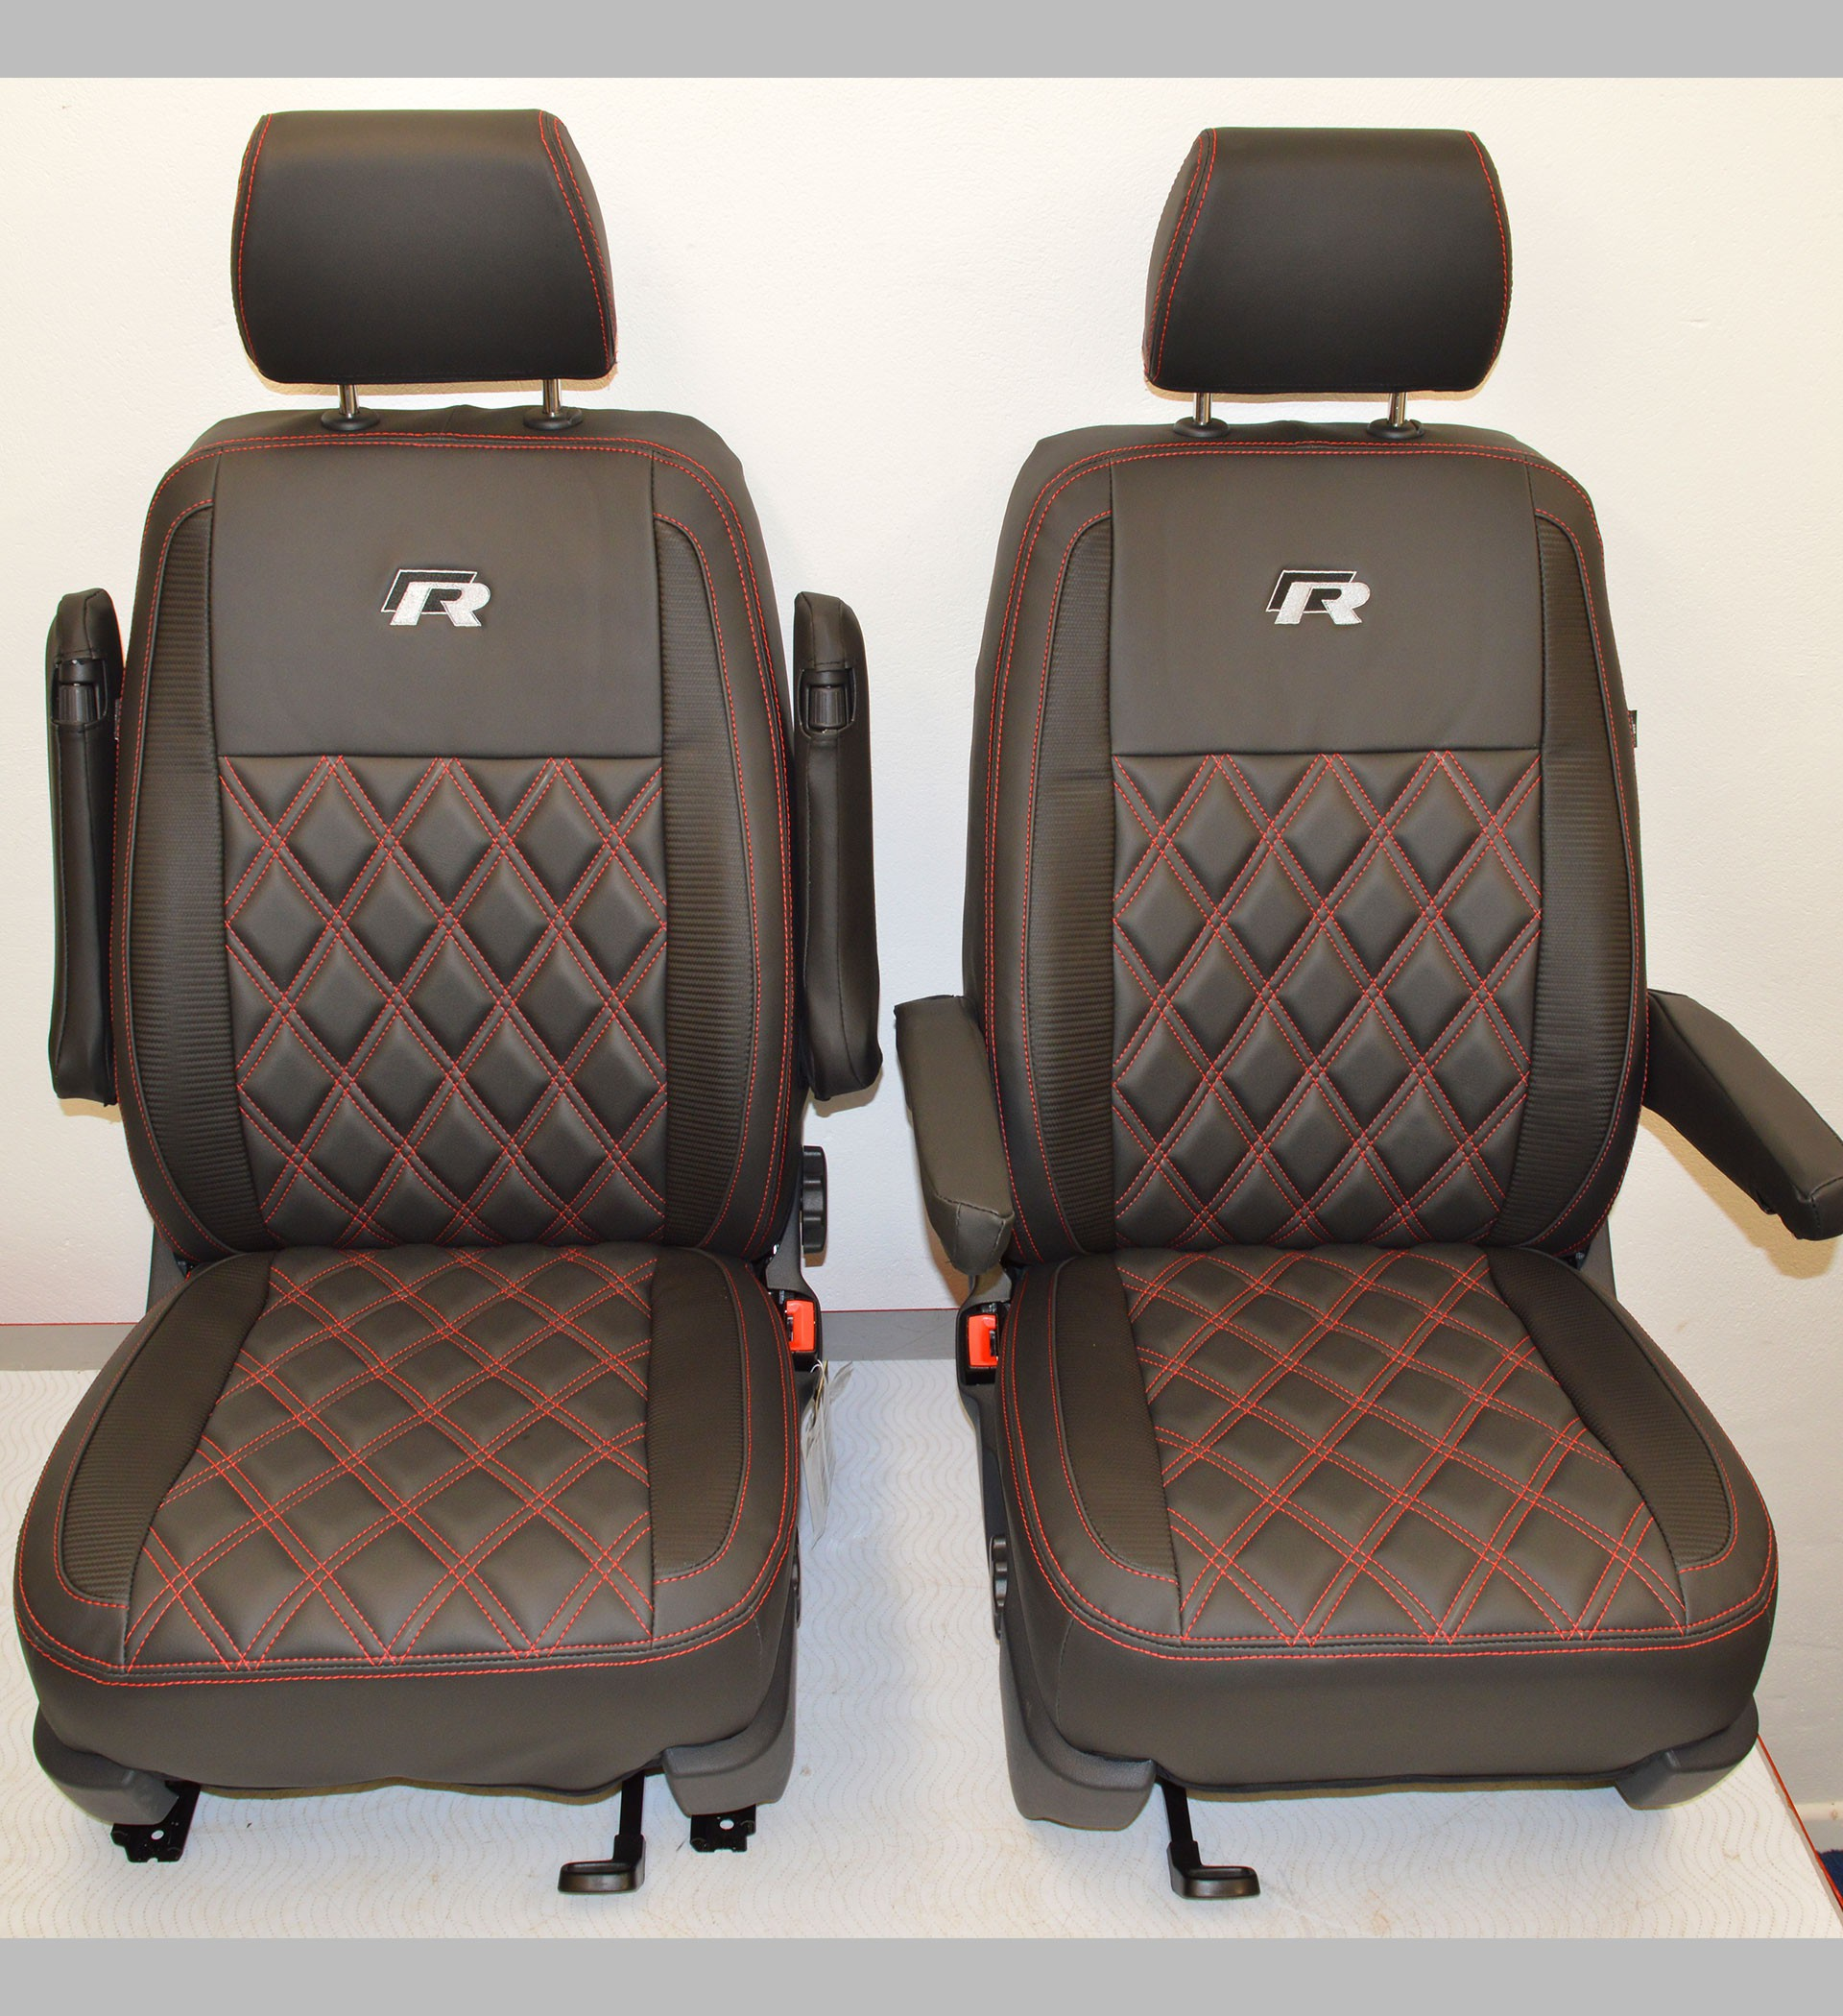 VW Transporter T6 R Line Tailored Seat Covers